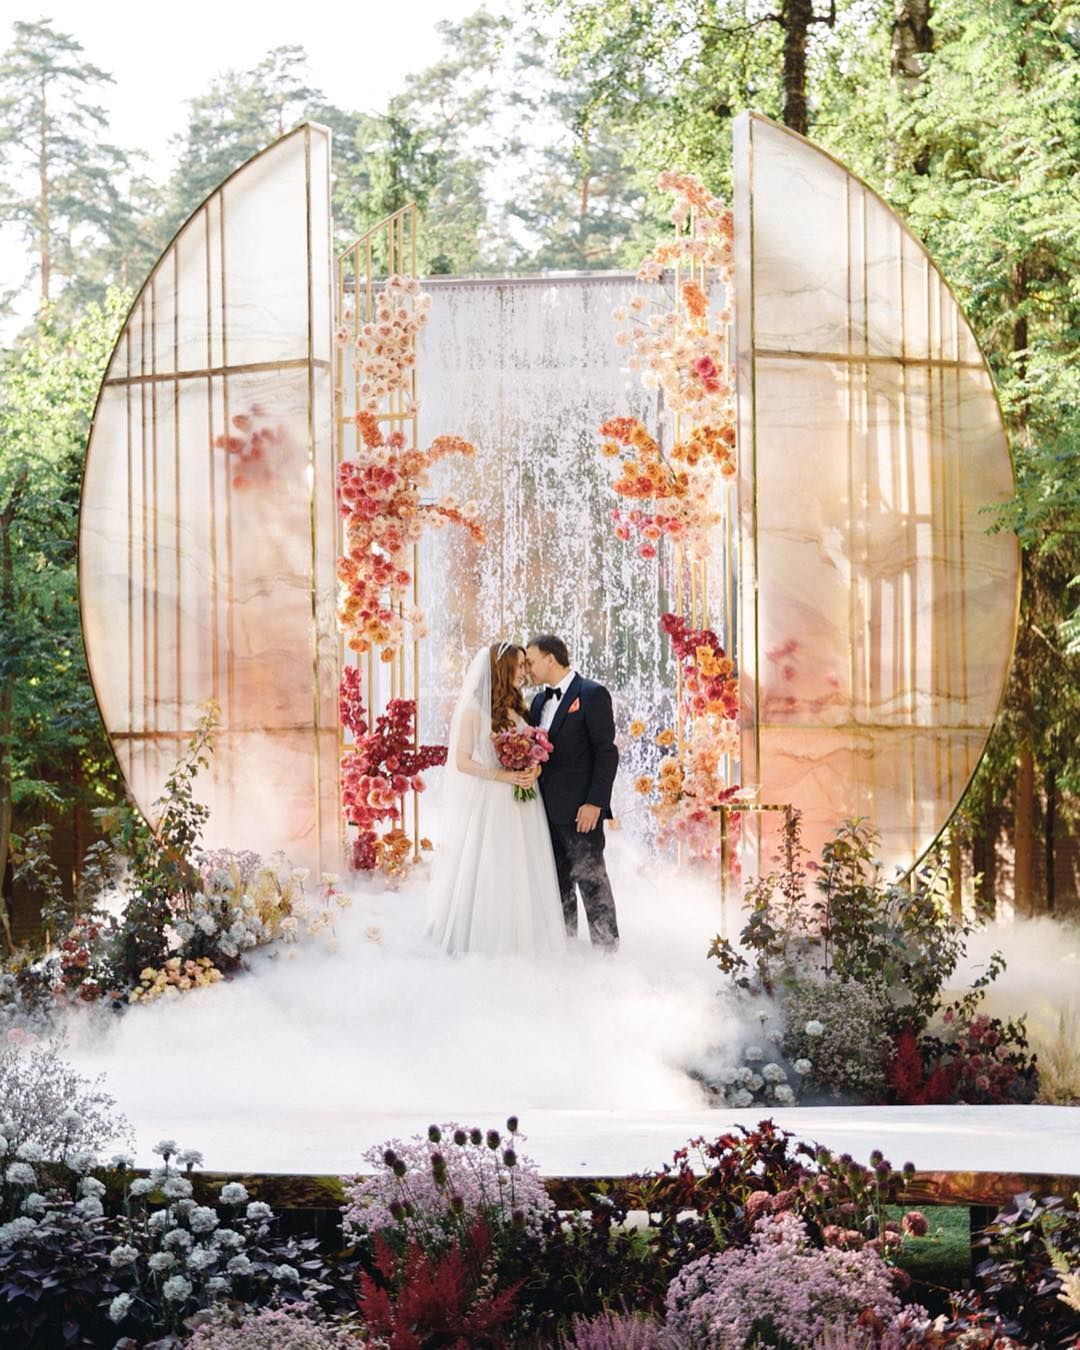 100 Awesome Wedding Decor Ideas For Outdoor Wedding Venues Wedding Decoration Reception Wedding D Outdoor Wedding Storybook Wedding Outdoor Wedding Venues